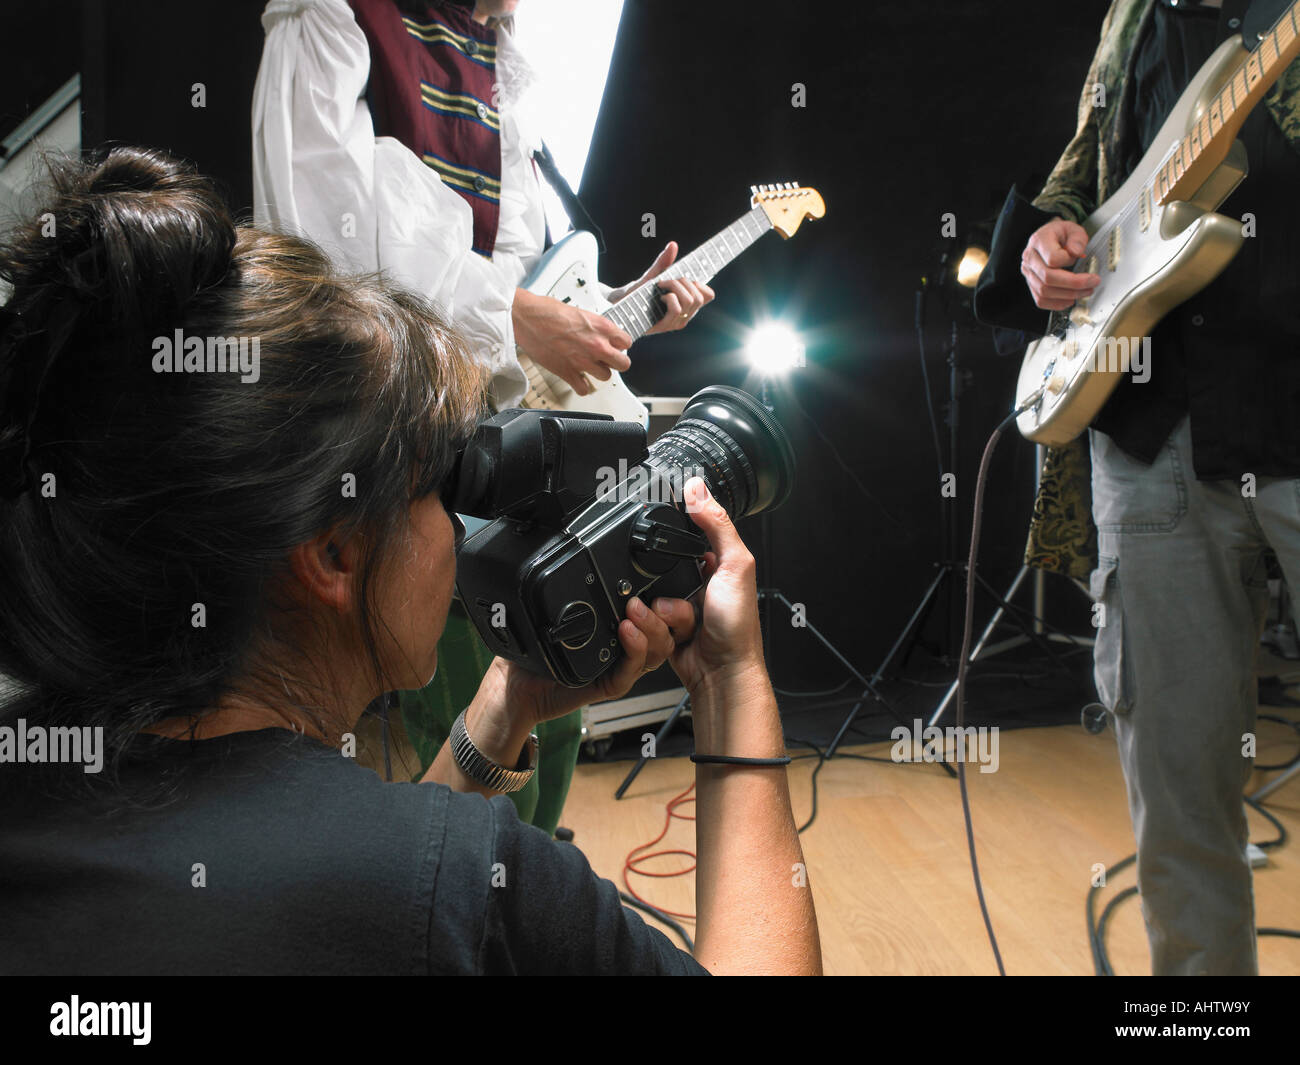 Female photographer shooting two electric guitar players in studio close up. - Stock Image